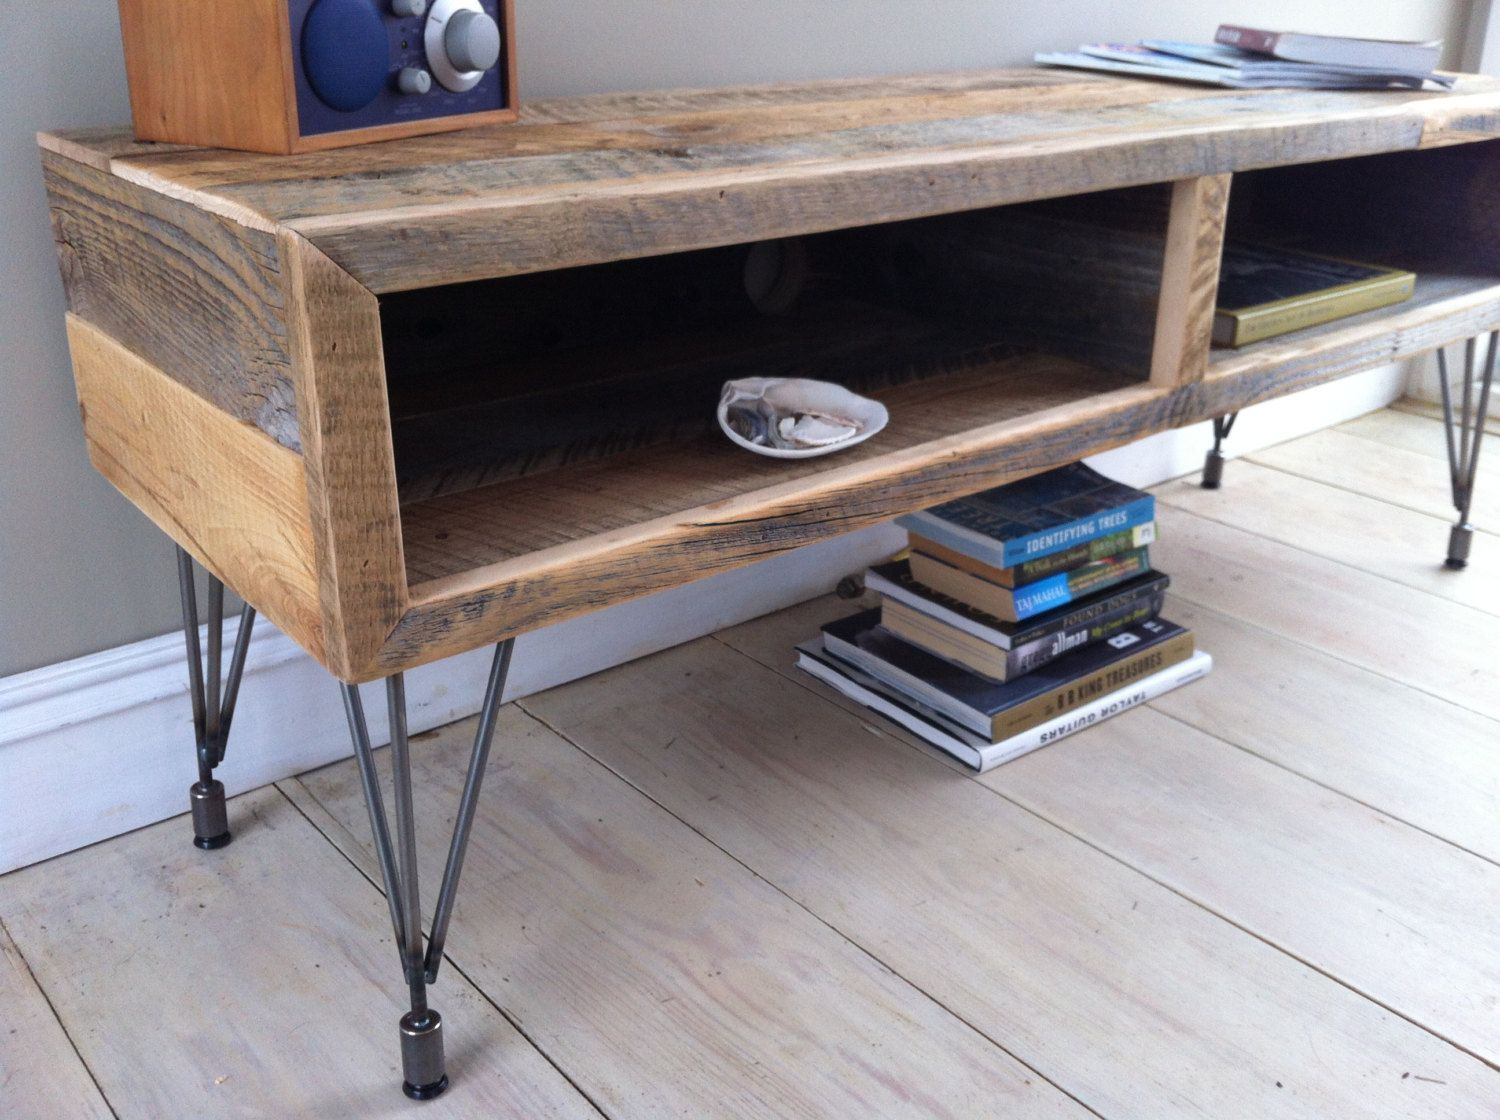 Modern industrial wood & steel TV/media stand, reclaimed barnwood with  hairpin legs. - Modern Industrial Wood & Steel TV/media Stand, Reclaimed Barnwood